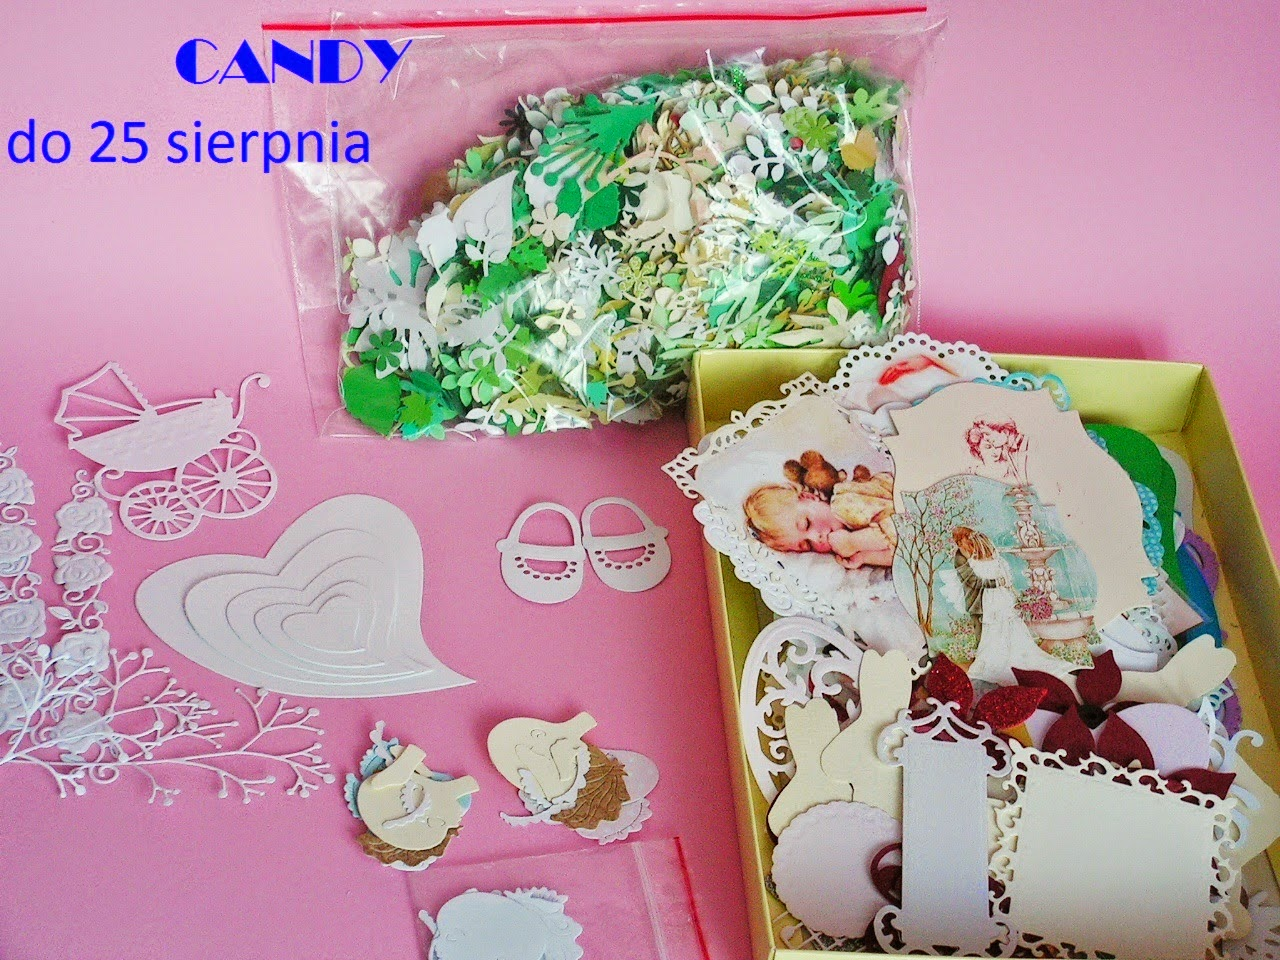 candy do 25 sierpien